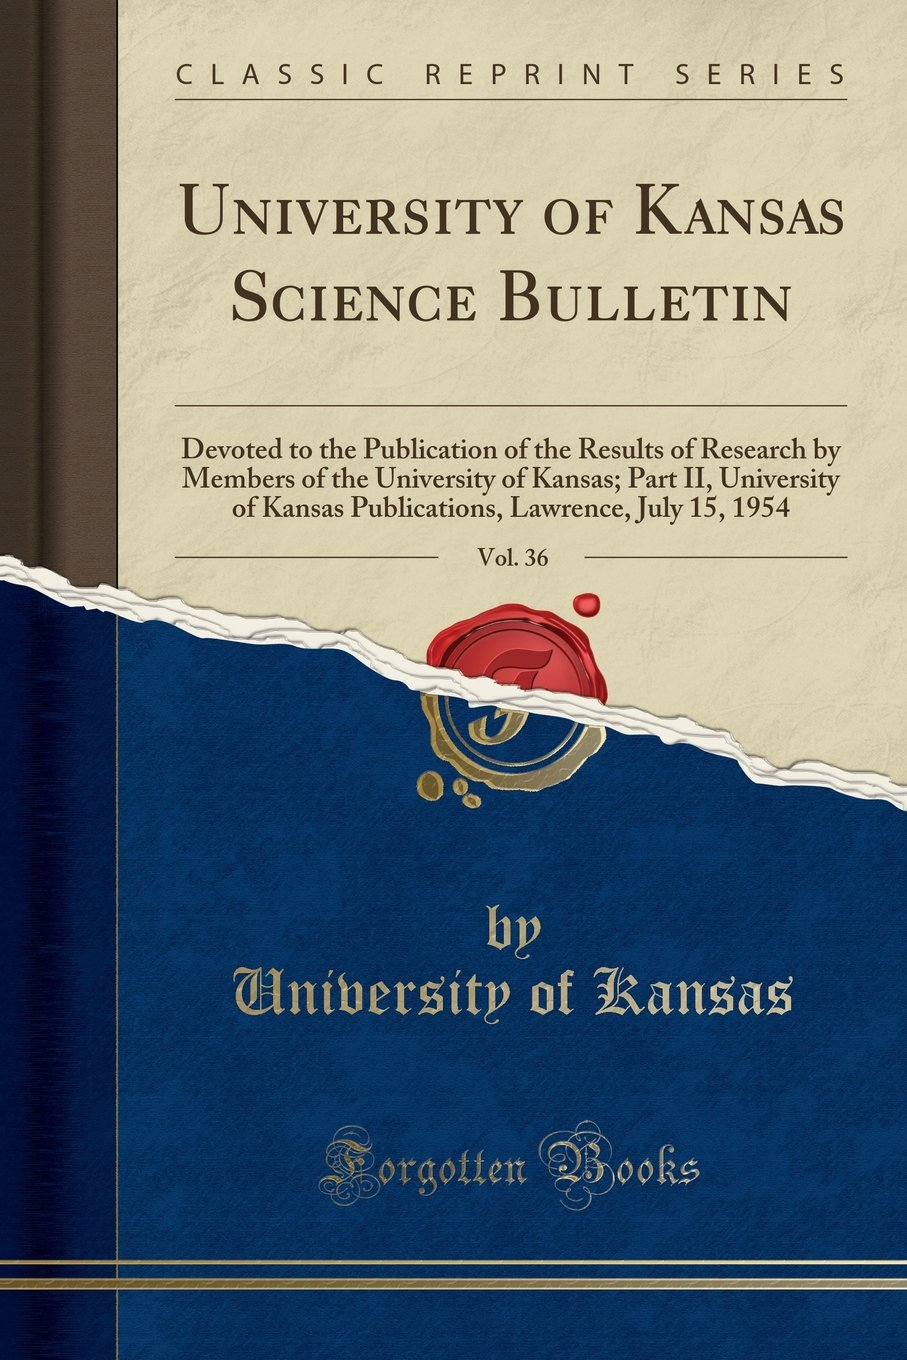 Download University of Kansas Science Bulletin, Vol. 36: Devoted to the Publication of the Results of Research by Members of the University of Kansas; Part II. Lawrence, July 15, 1954 (Classic Reprint) pdf